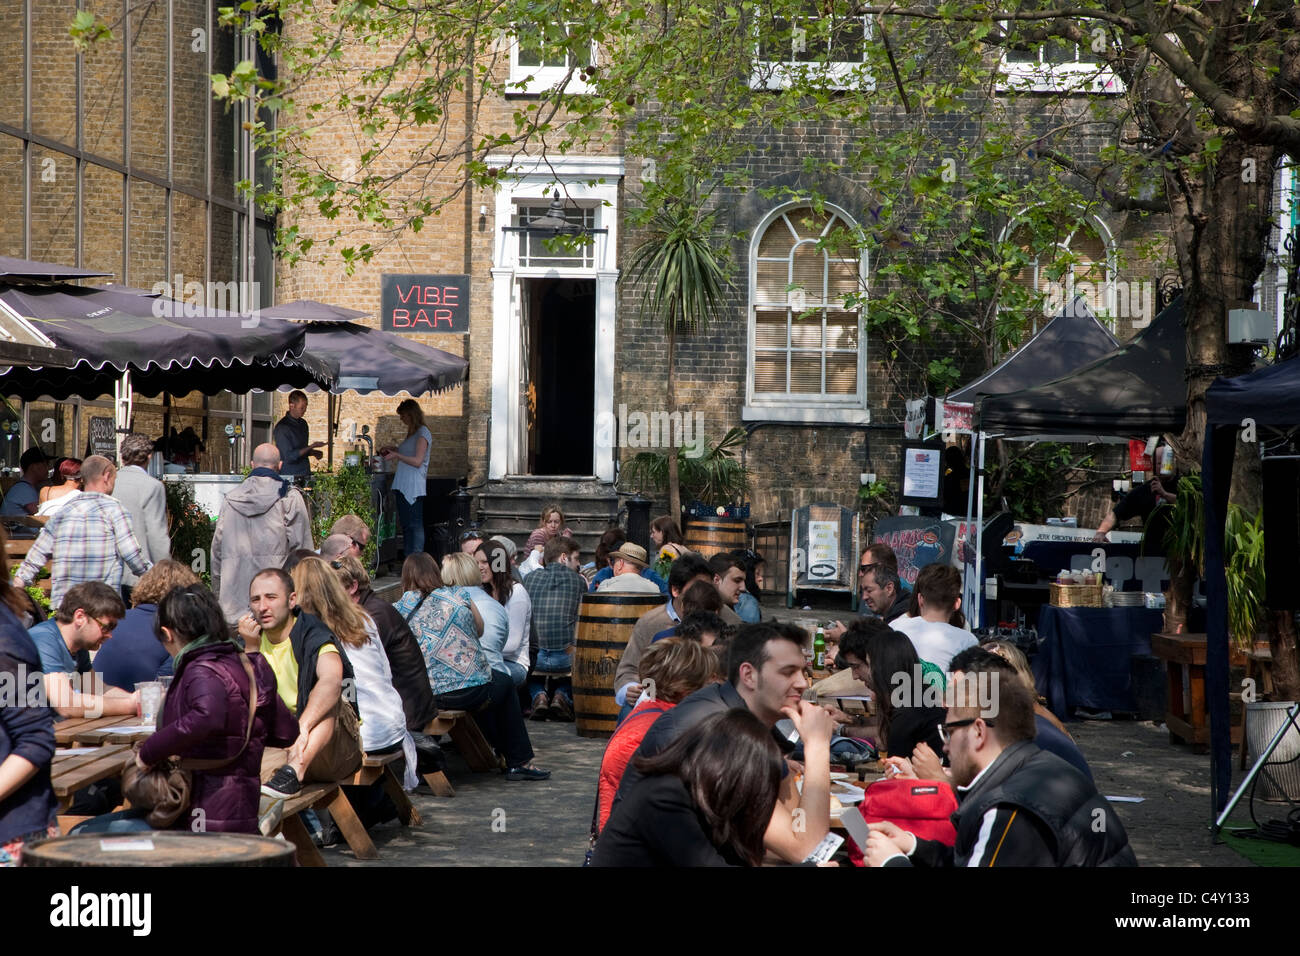 People Eating and Drinking in the Beer Garden in the Vibe Bar, Brick Lane, London - Stock Image